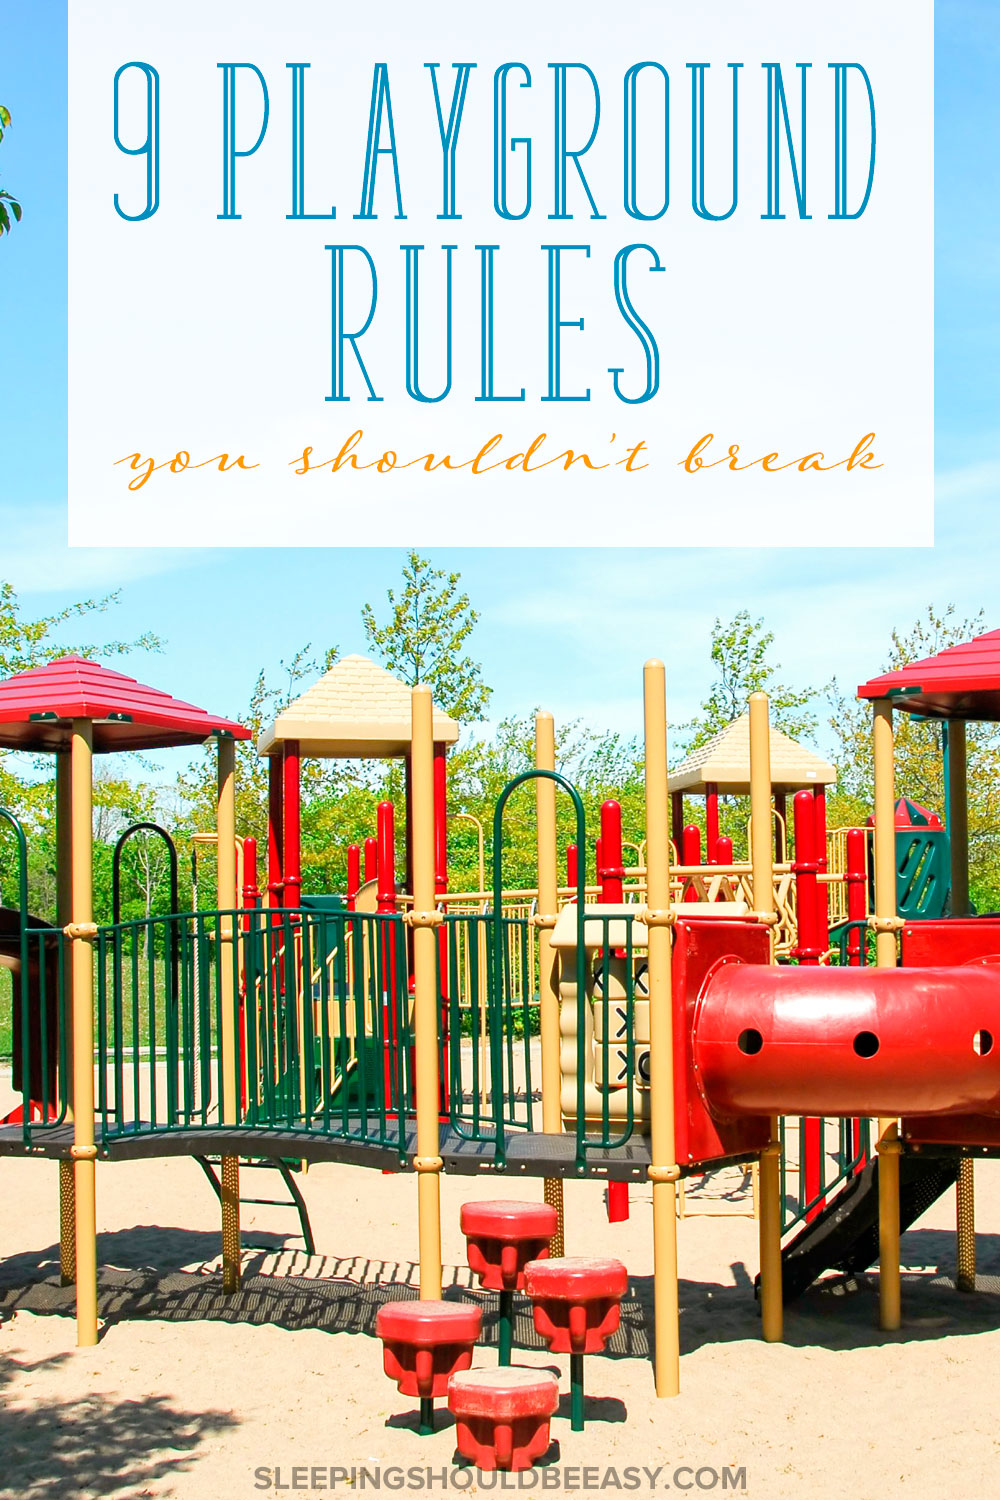 Playgrounds can be fun, but they can also feel chaotic. Check out these 9 playground rules to remember so everyone plays nicely with others.